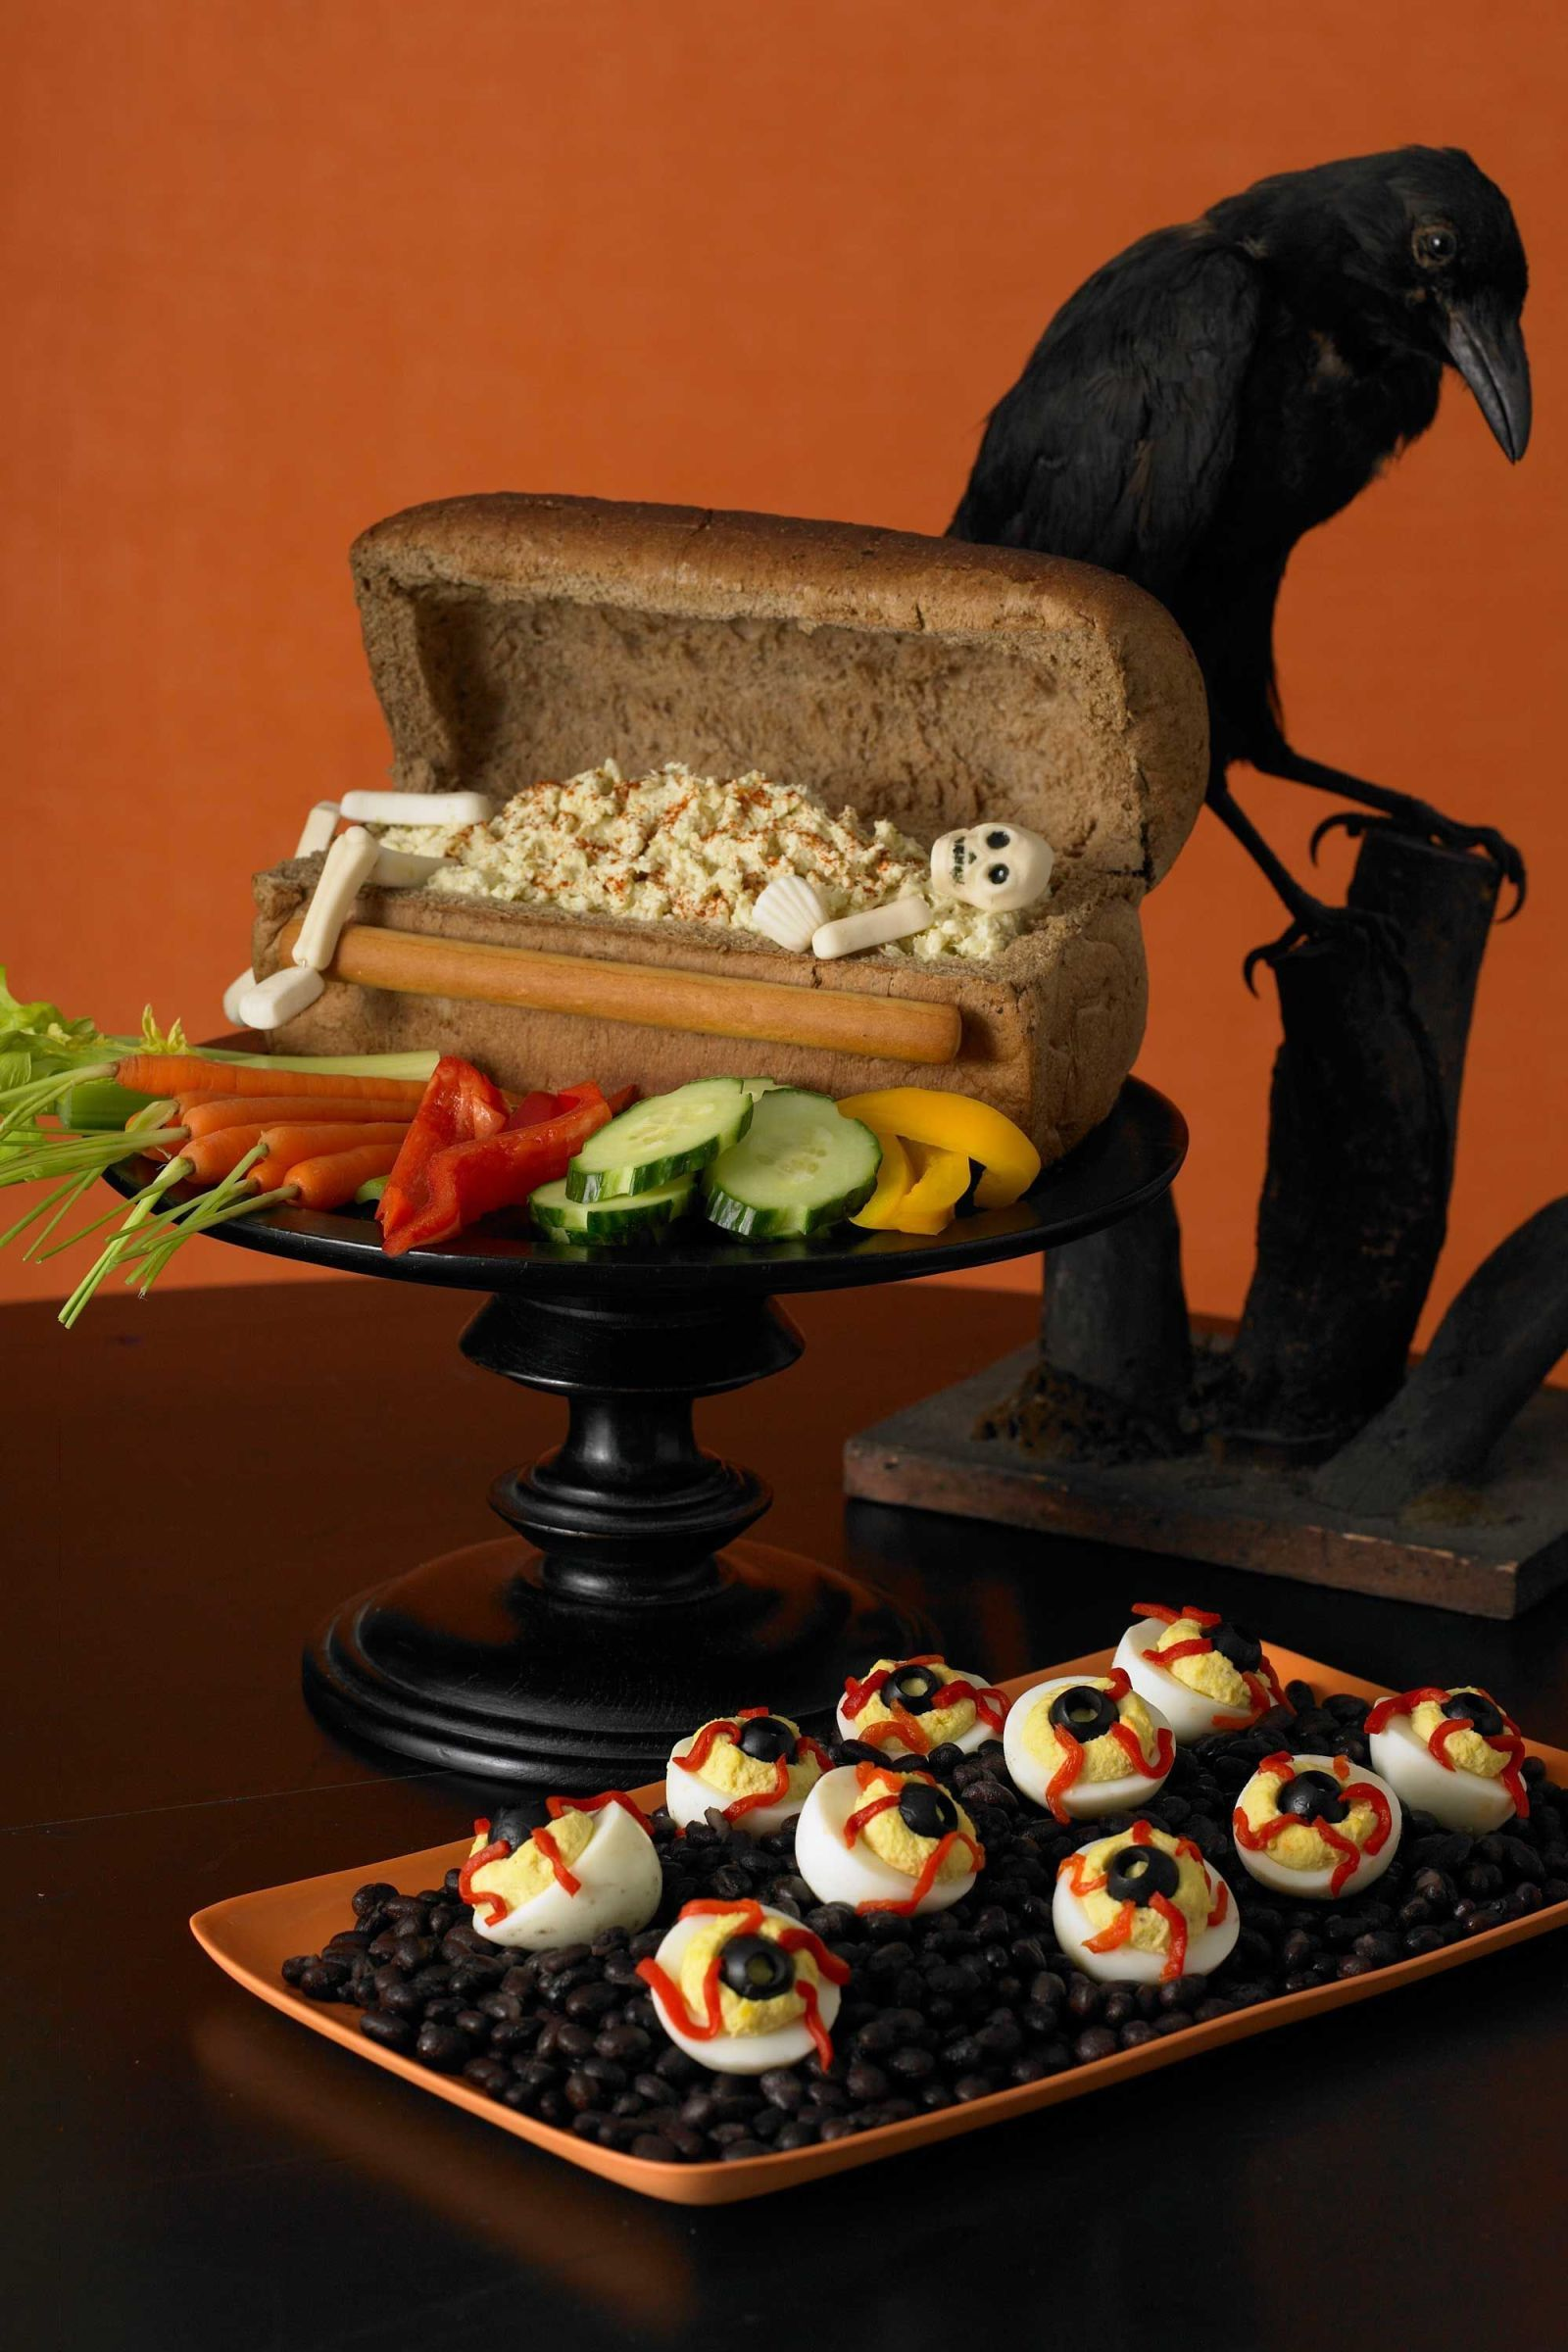 Halloween door decorations mummy downloader - 1000 Images About Halloween On Pinterest Pumpkins Avocado Deviled Eggs And Rave Tops